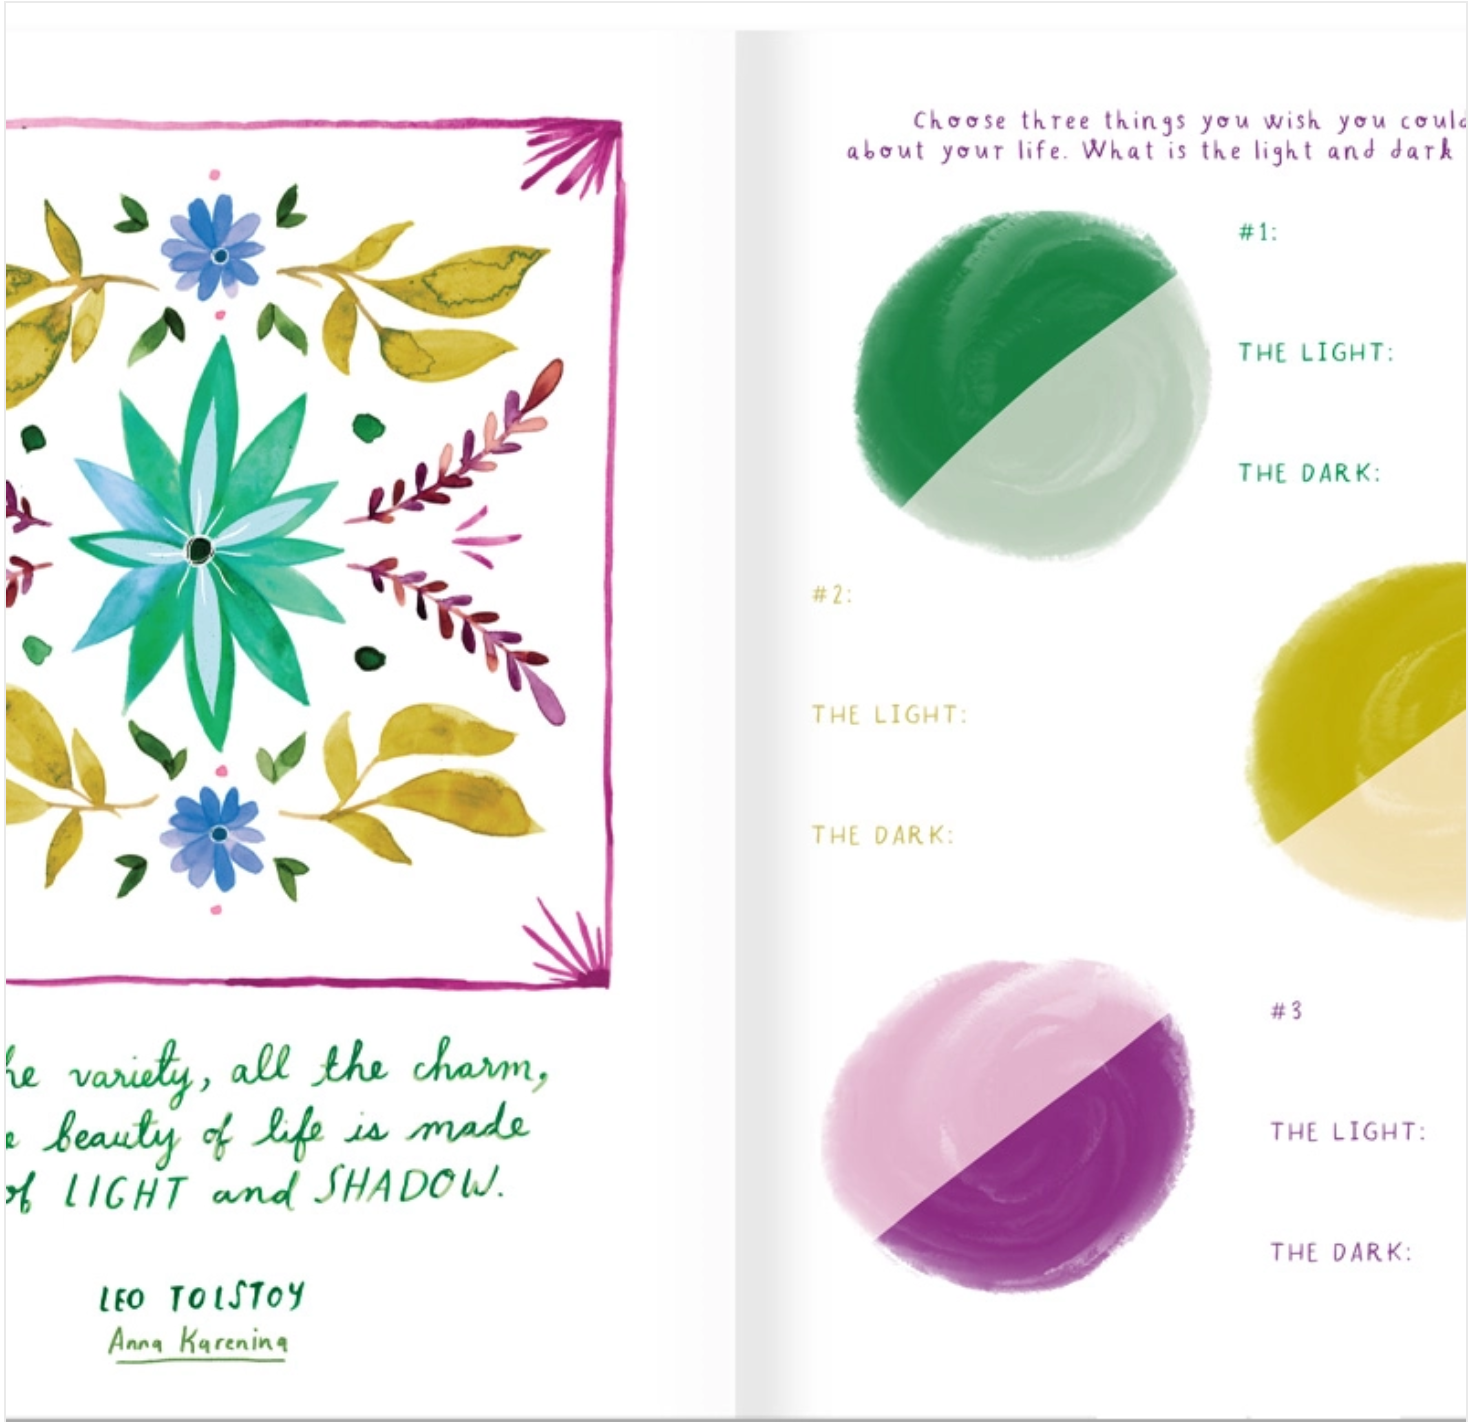 Meera Lee Patel Create Your Own Calm: A Journal for Quieting Anxiety